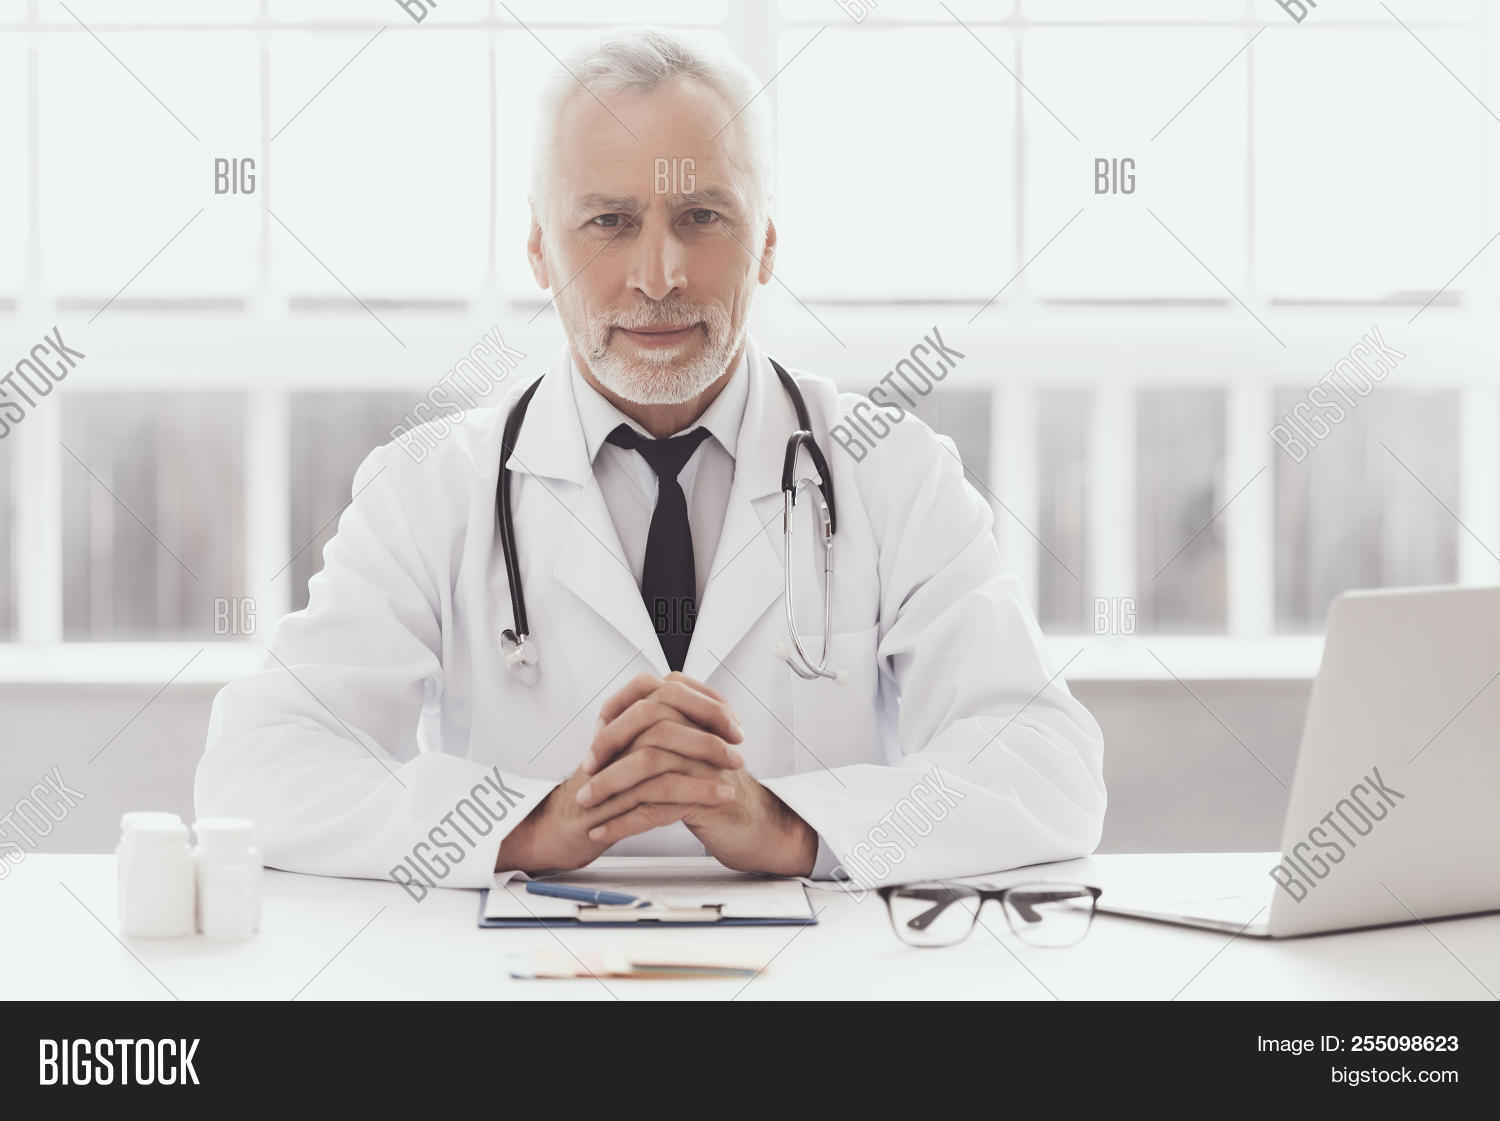 Professional Doctor Sitting In Medical Office. Portrait Of Mature Bearded Smiling Doctor Wearing Whi